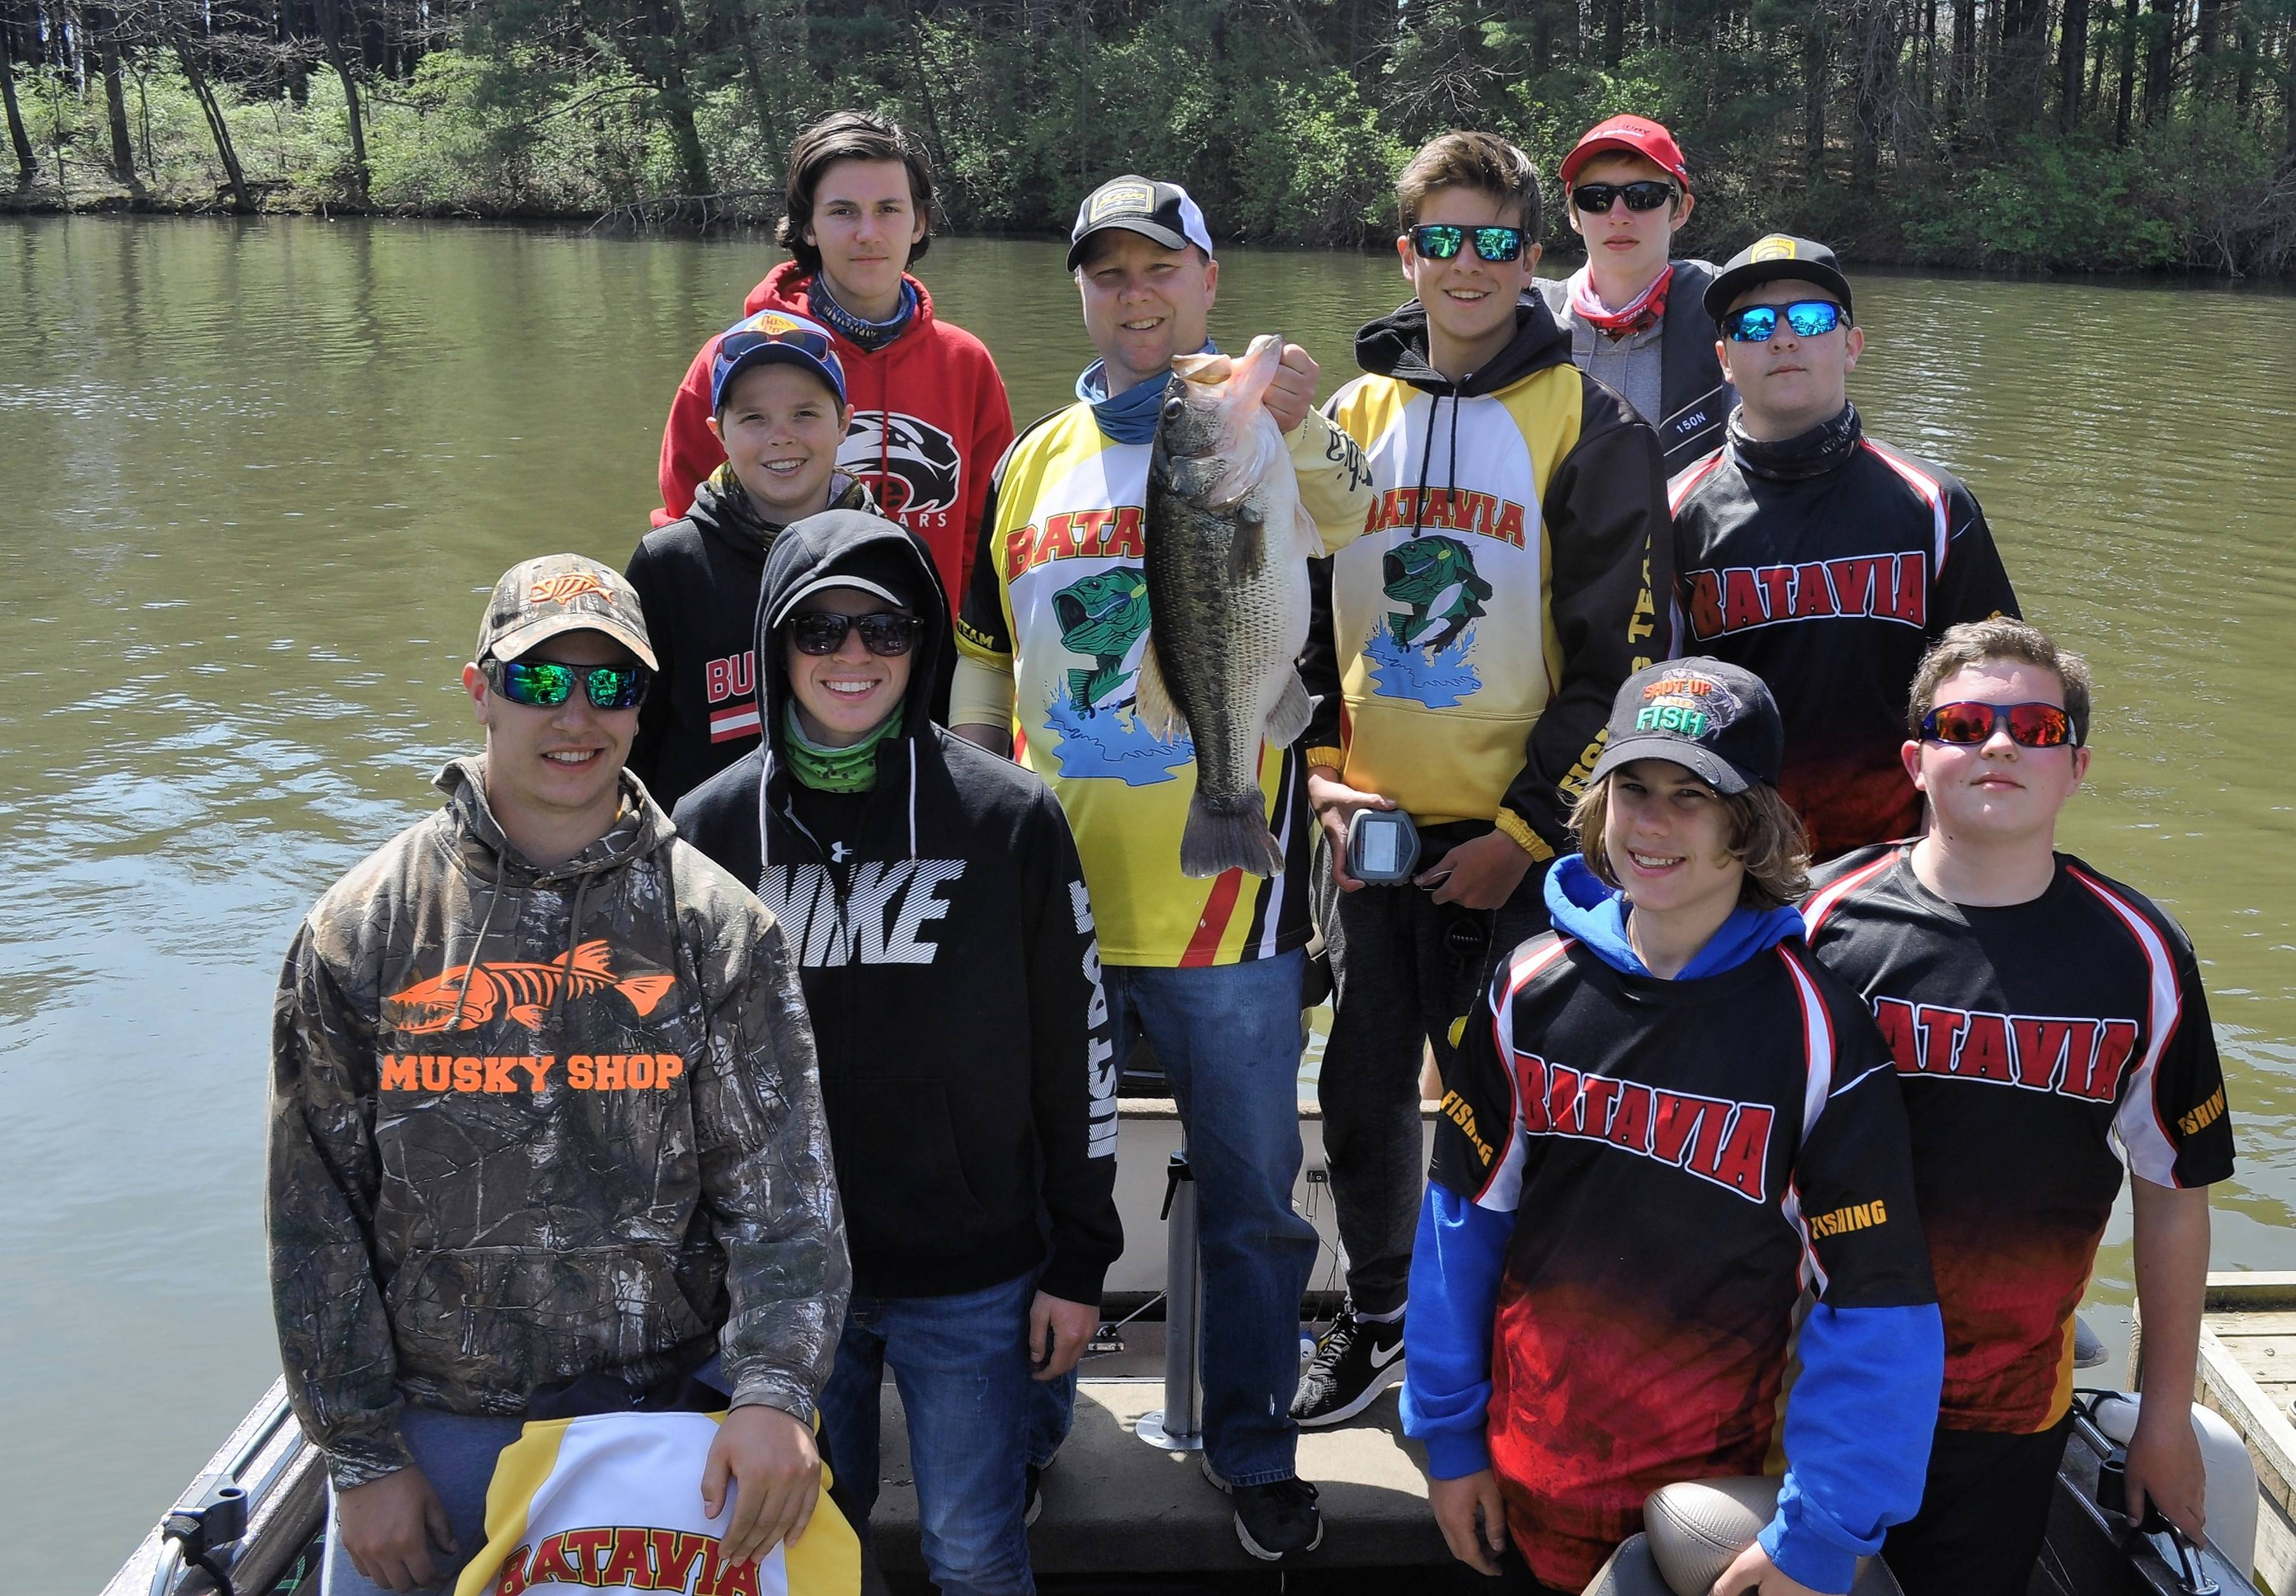 The Batavia High School's fishing team includes: first row, from left, Connor Stejskal, J.D. Rodriguez, Devin DeKeyser and Ryan Larson; middle row, Dylan Krol, Coach Jeff Miller, Tanner Nelson and Nick Krumwiede, and back row, Connor McFarland and Patrick Desmet.